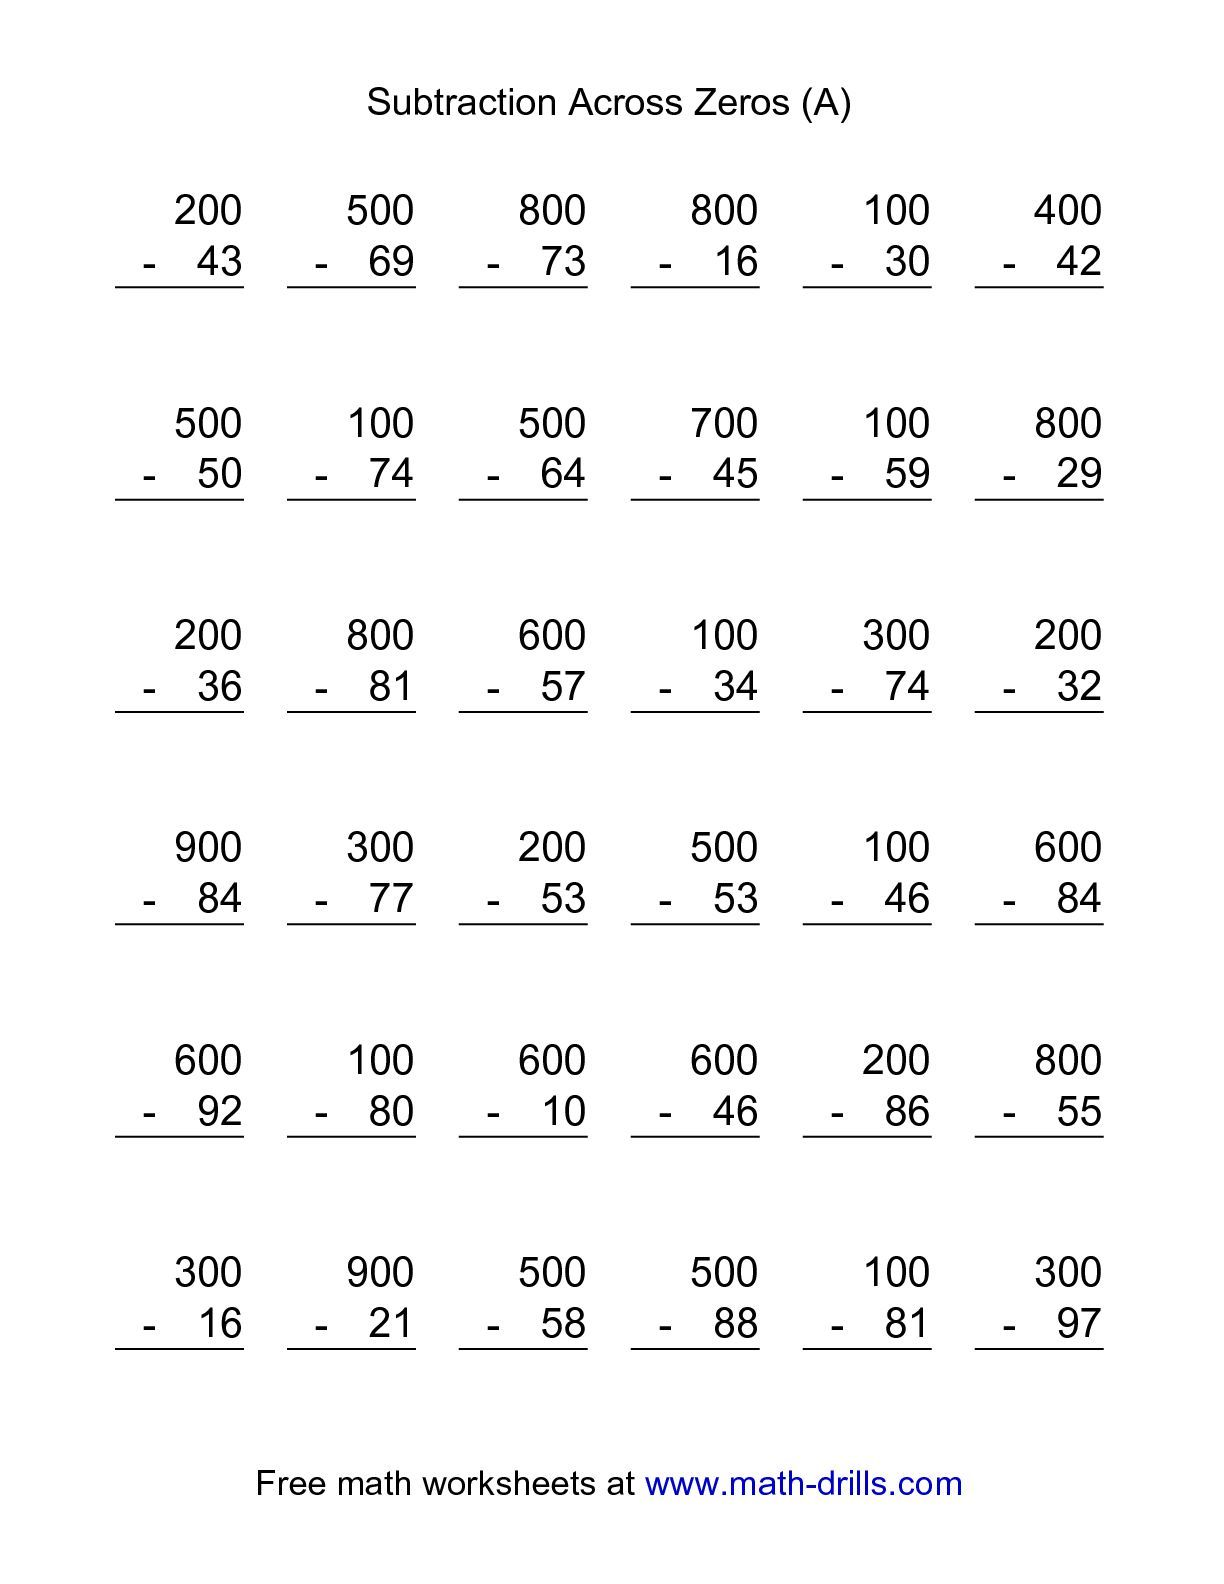 the subtraction across zeros -- 36 questions (a) math worksheet from